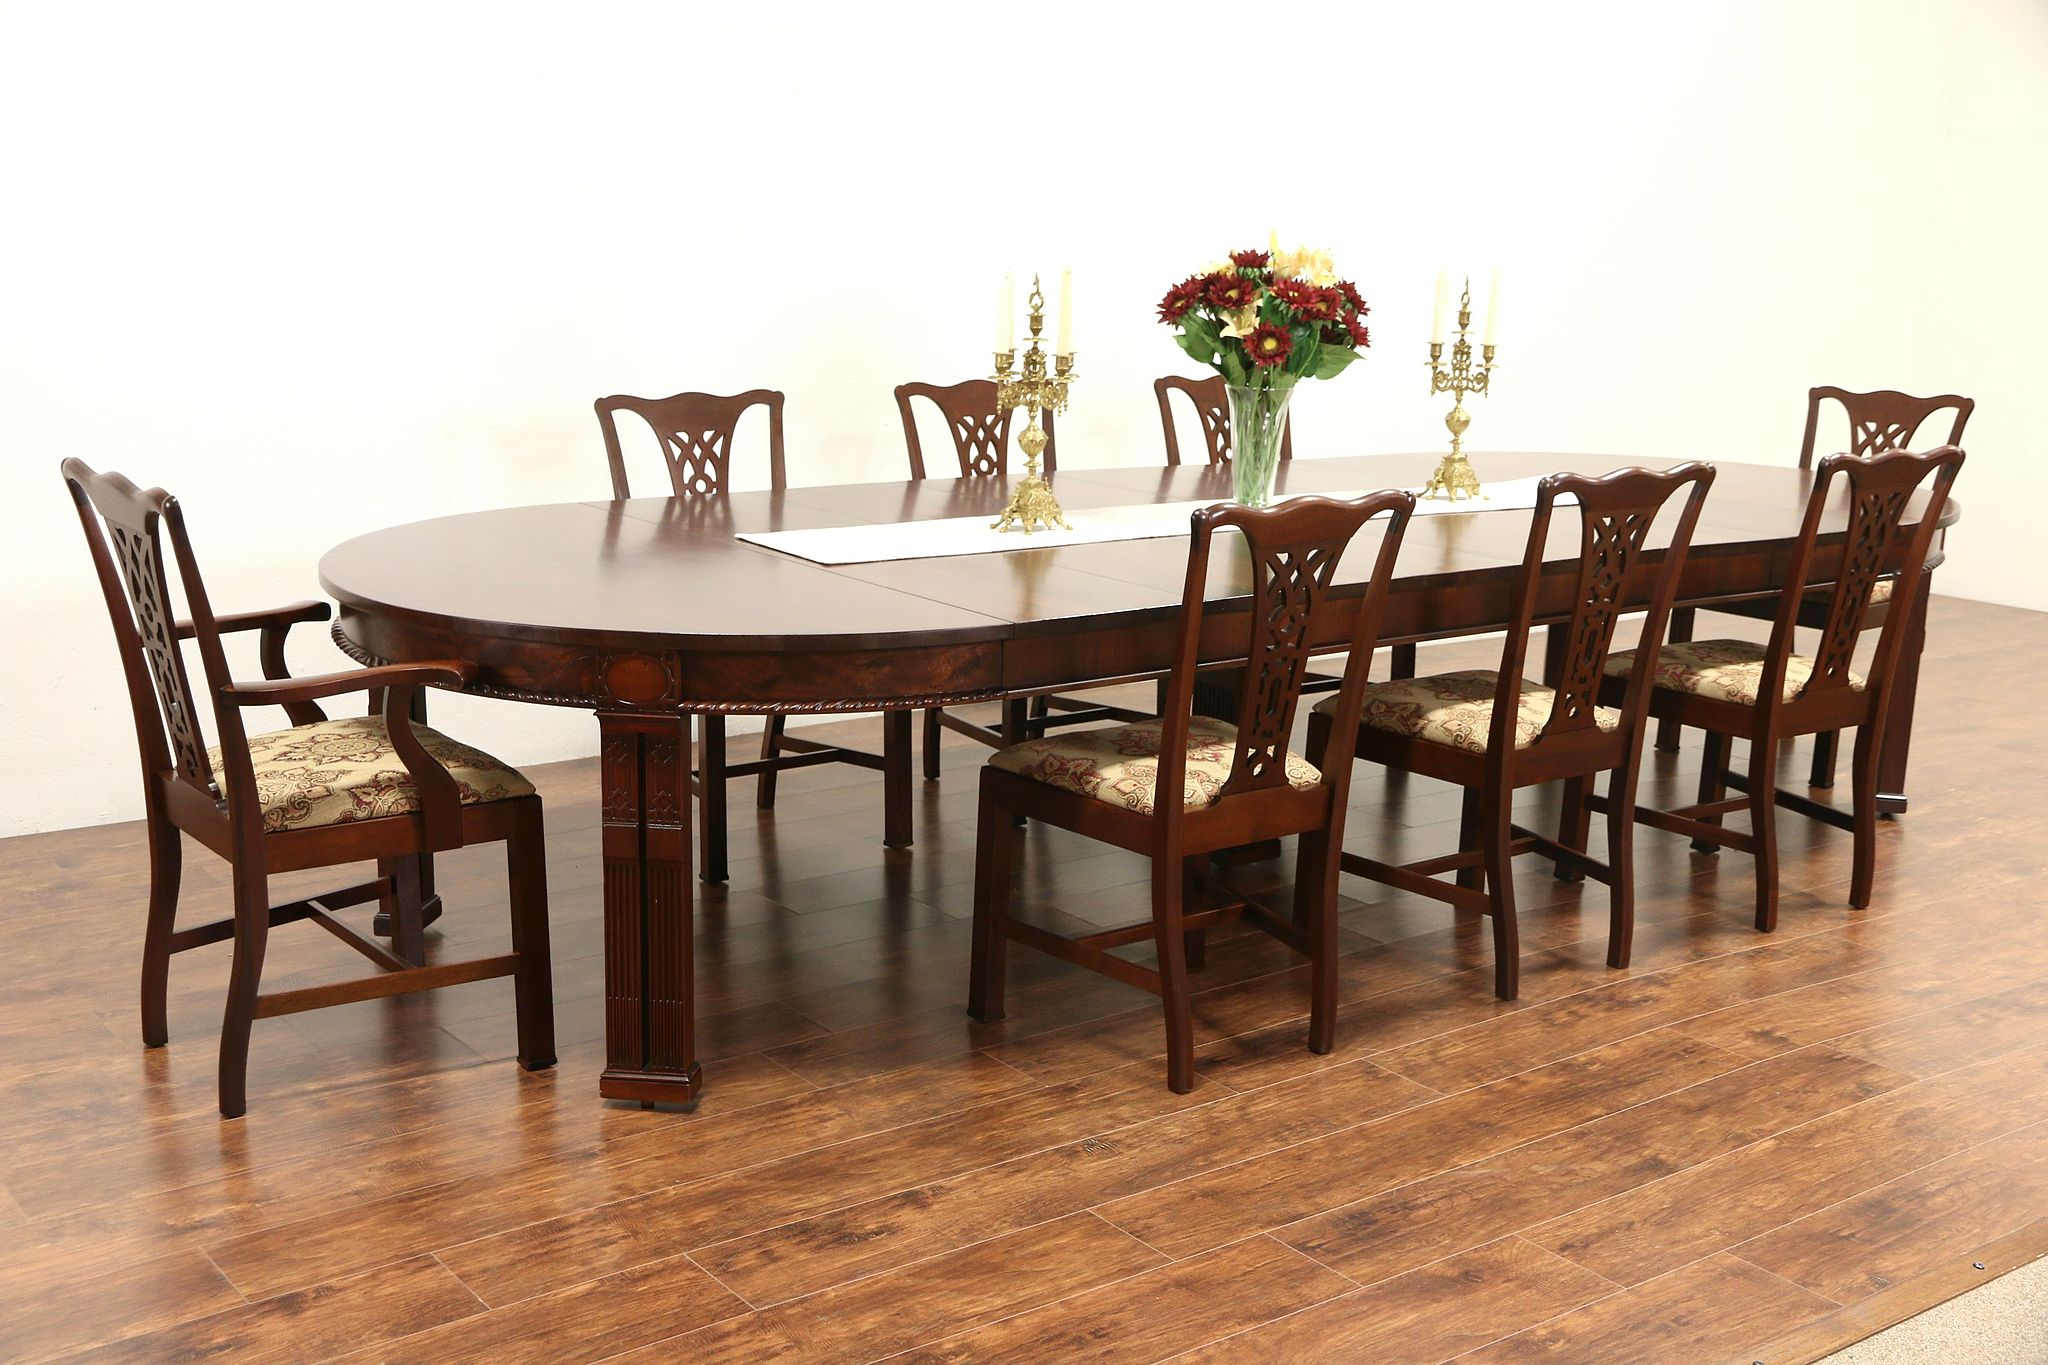 Sold Georgian 1915 Antique Mahogany Dining Set 5 Table Extends 12 1 2 8 Chairs Harp Gallery Antiques Furniture